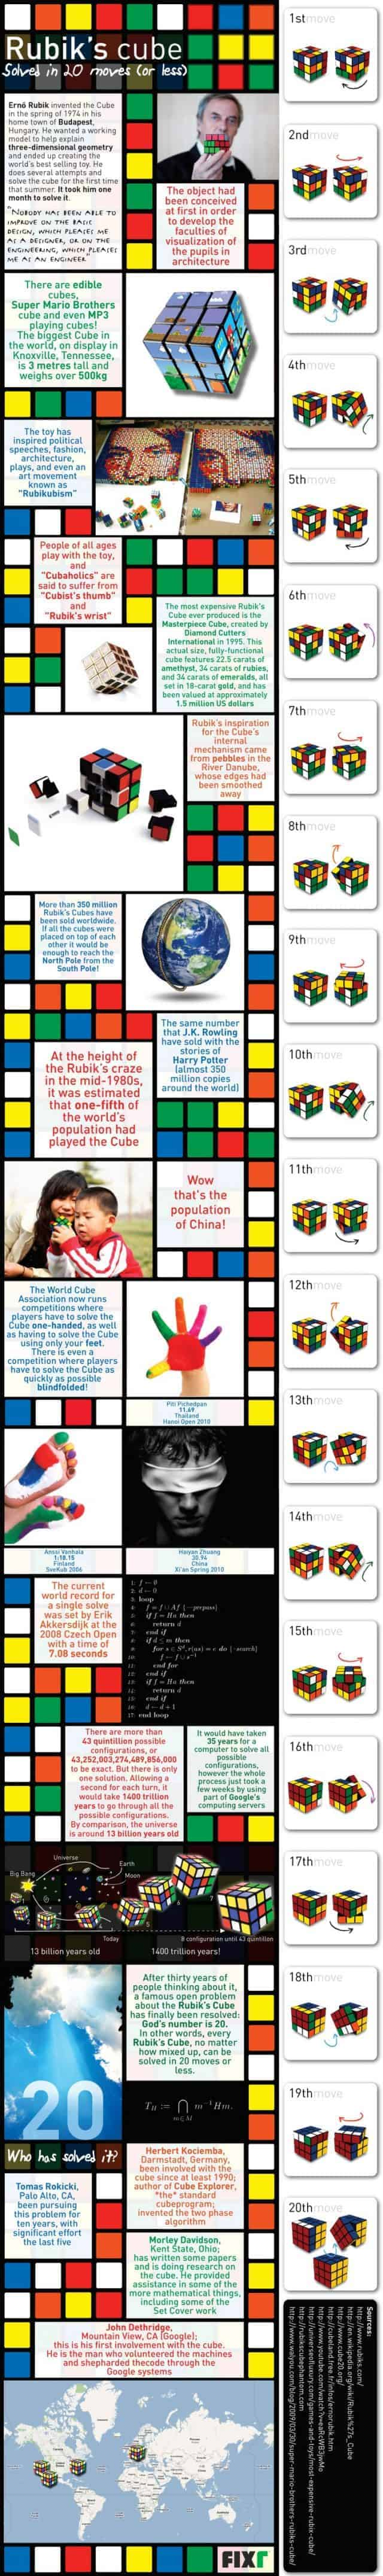 hight resolution of rubik s cube solved in 20 moves or less